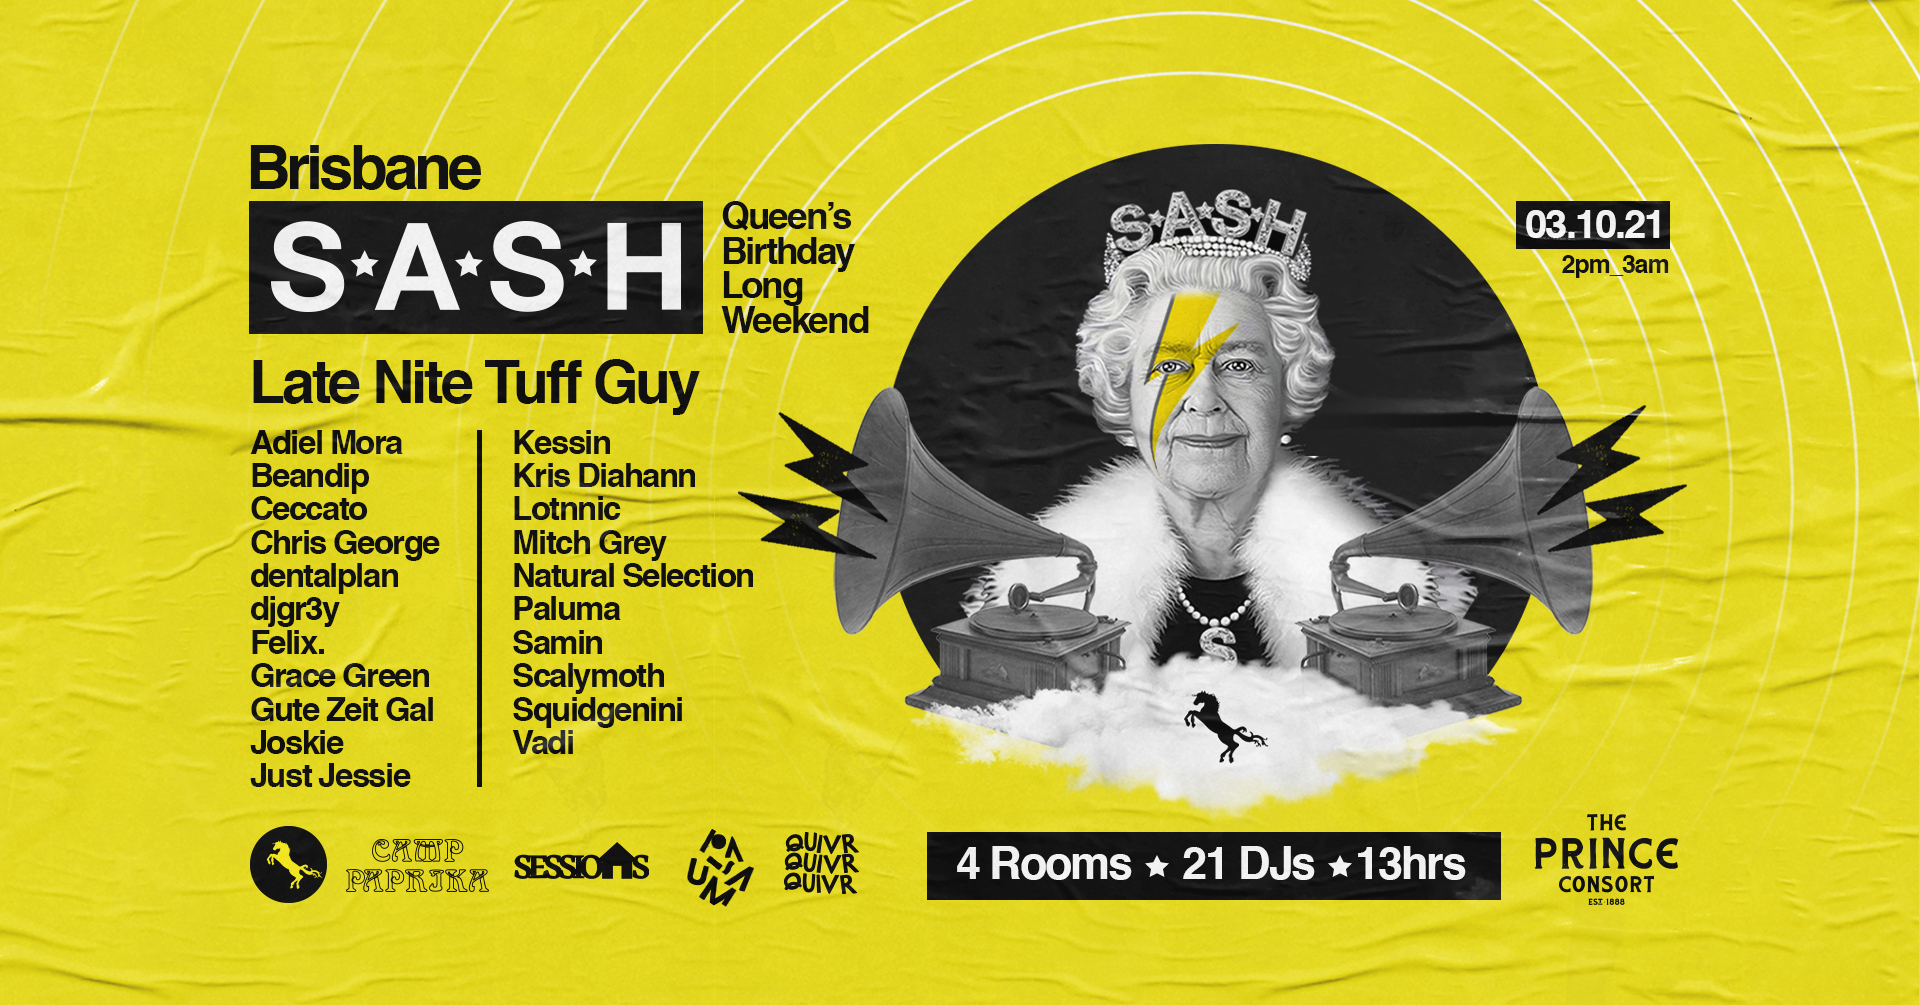 S*A*S*H Queen's Birthday Long Weekend